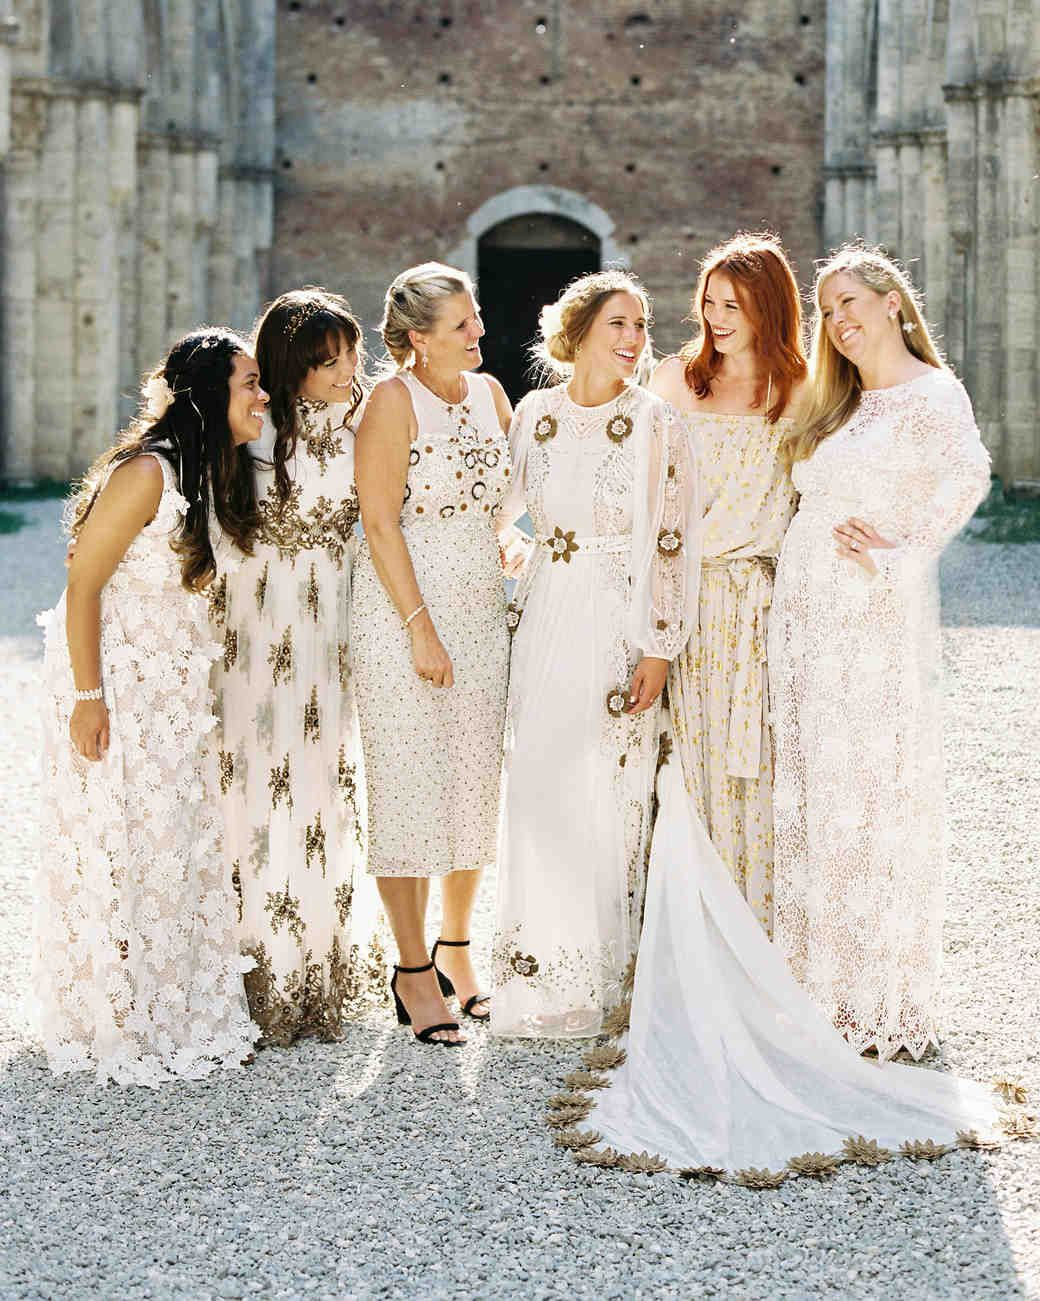 Mother Of The Bride Dresses That Wowed At Weddings White Bridesmaid Dresses Unique Bridesmaid Dresses Bridesmaid Dresses [ 1301 x 1040 Pixel ]